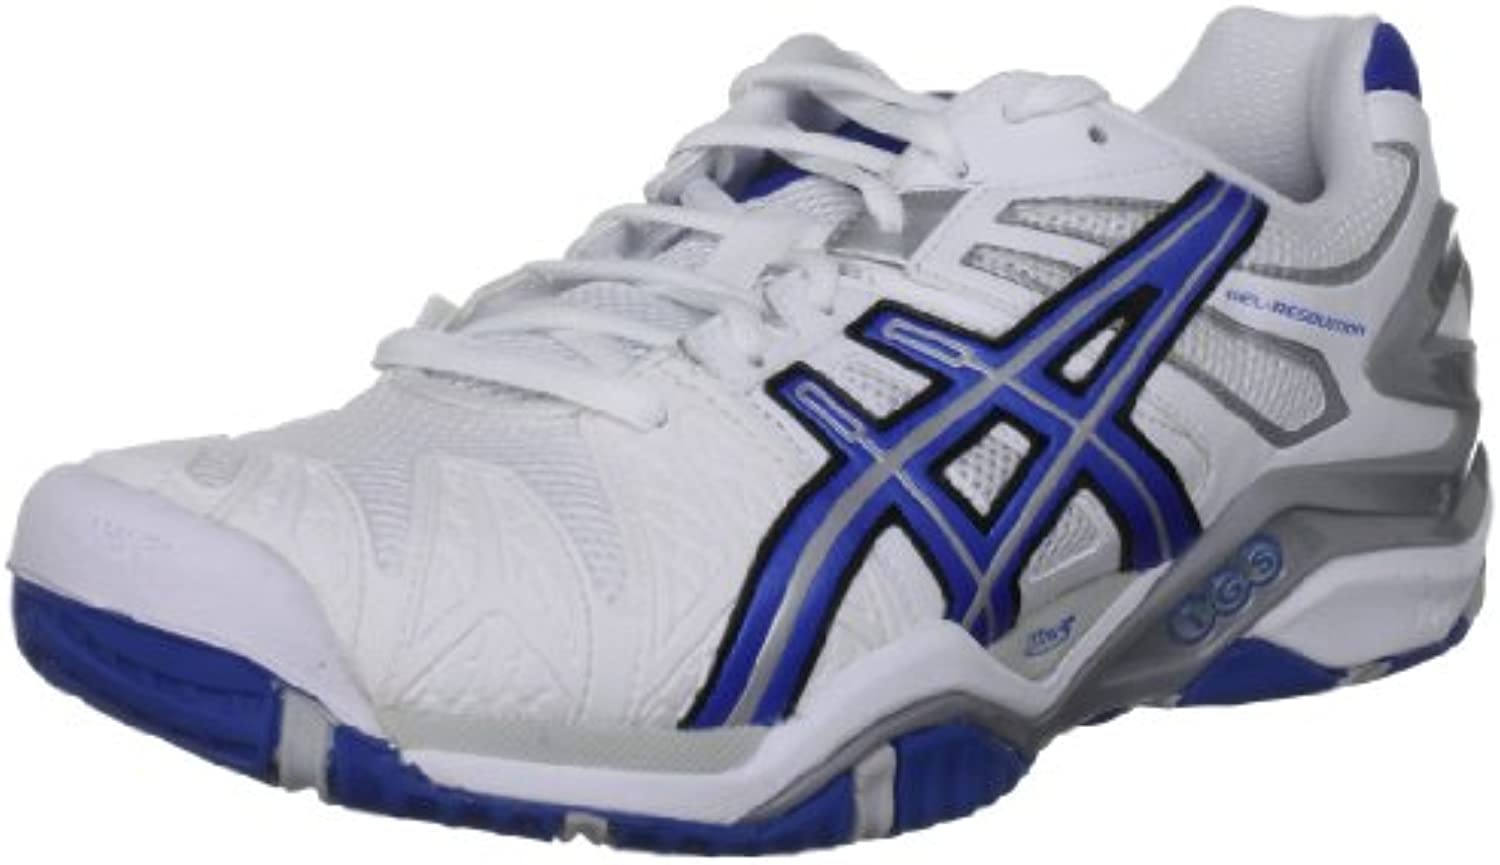 Asics Herren Gel Resolution Tennisschuhe  Blau